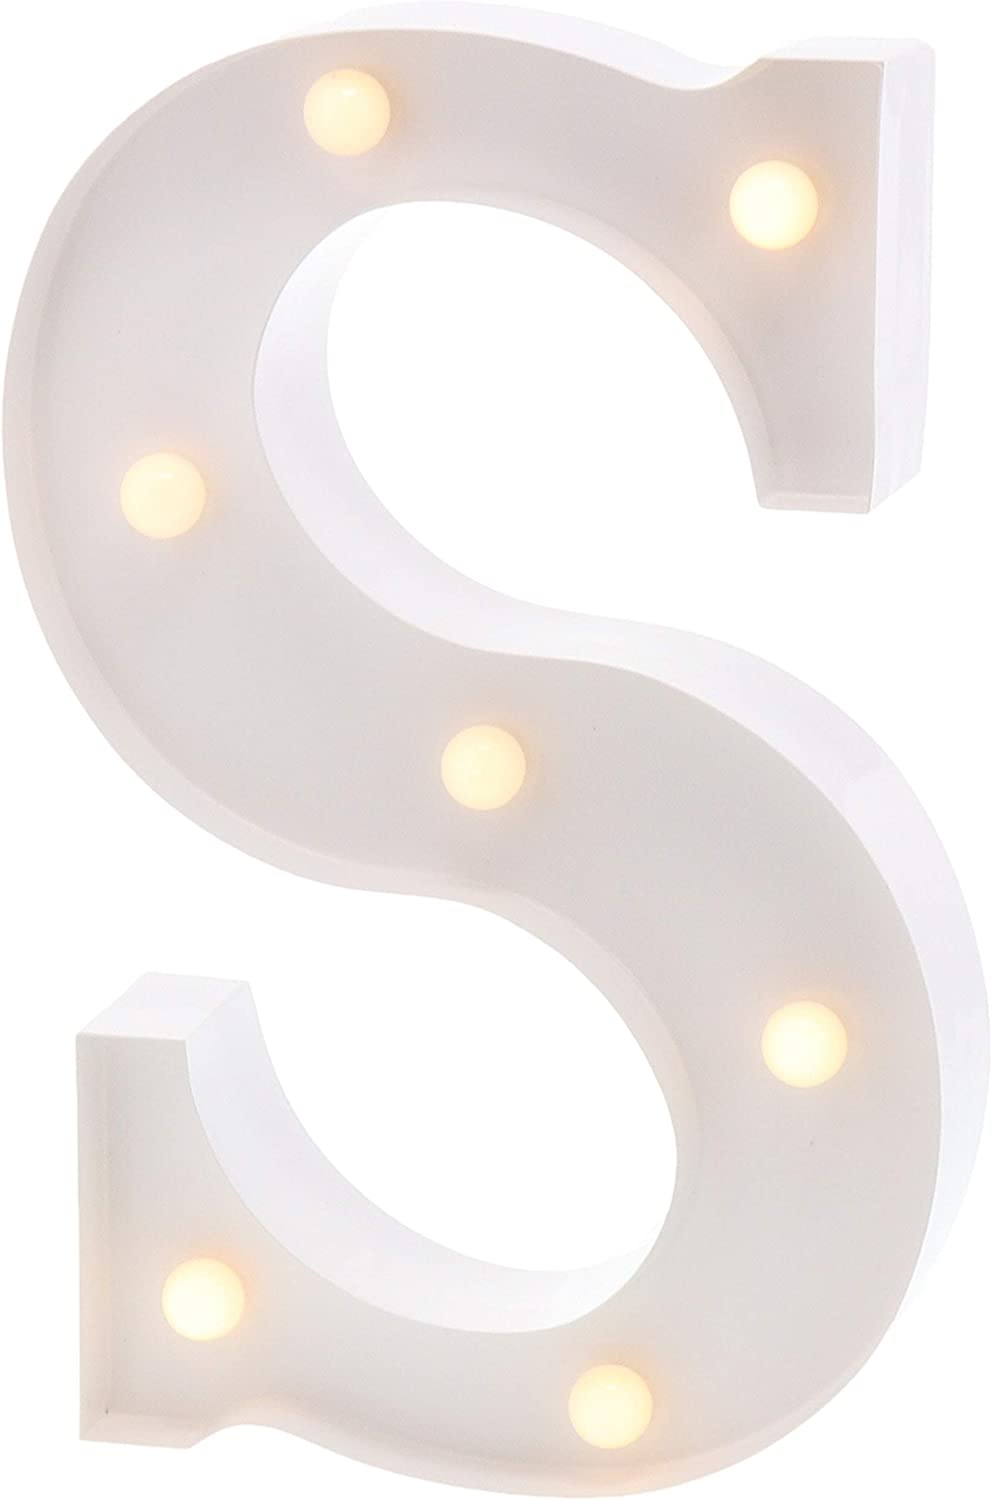 "Barnyard Designs Metal Marquee Letter S Light Up Wall Initial Wedding, Bar, Home and Nursery Letter Decoration 12"" (White)"